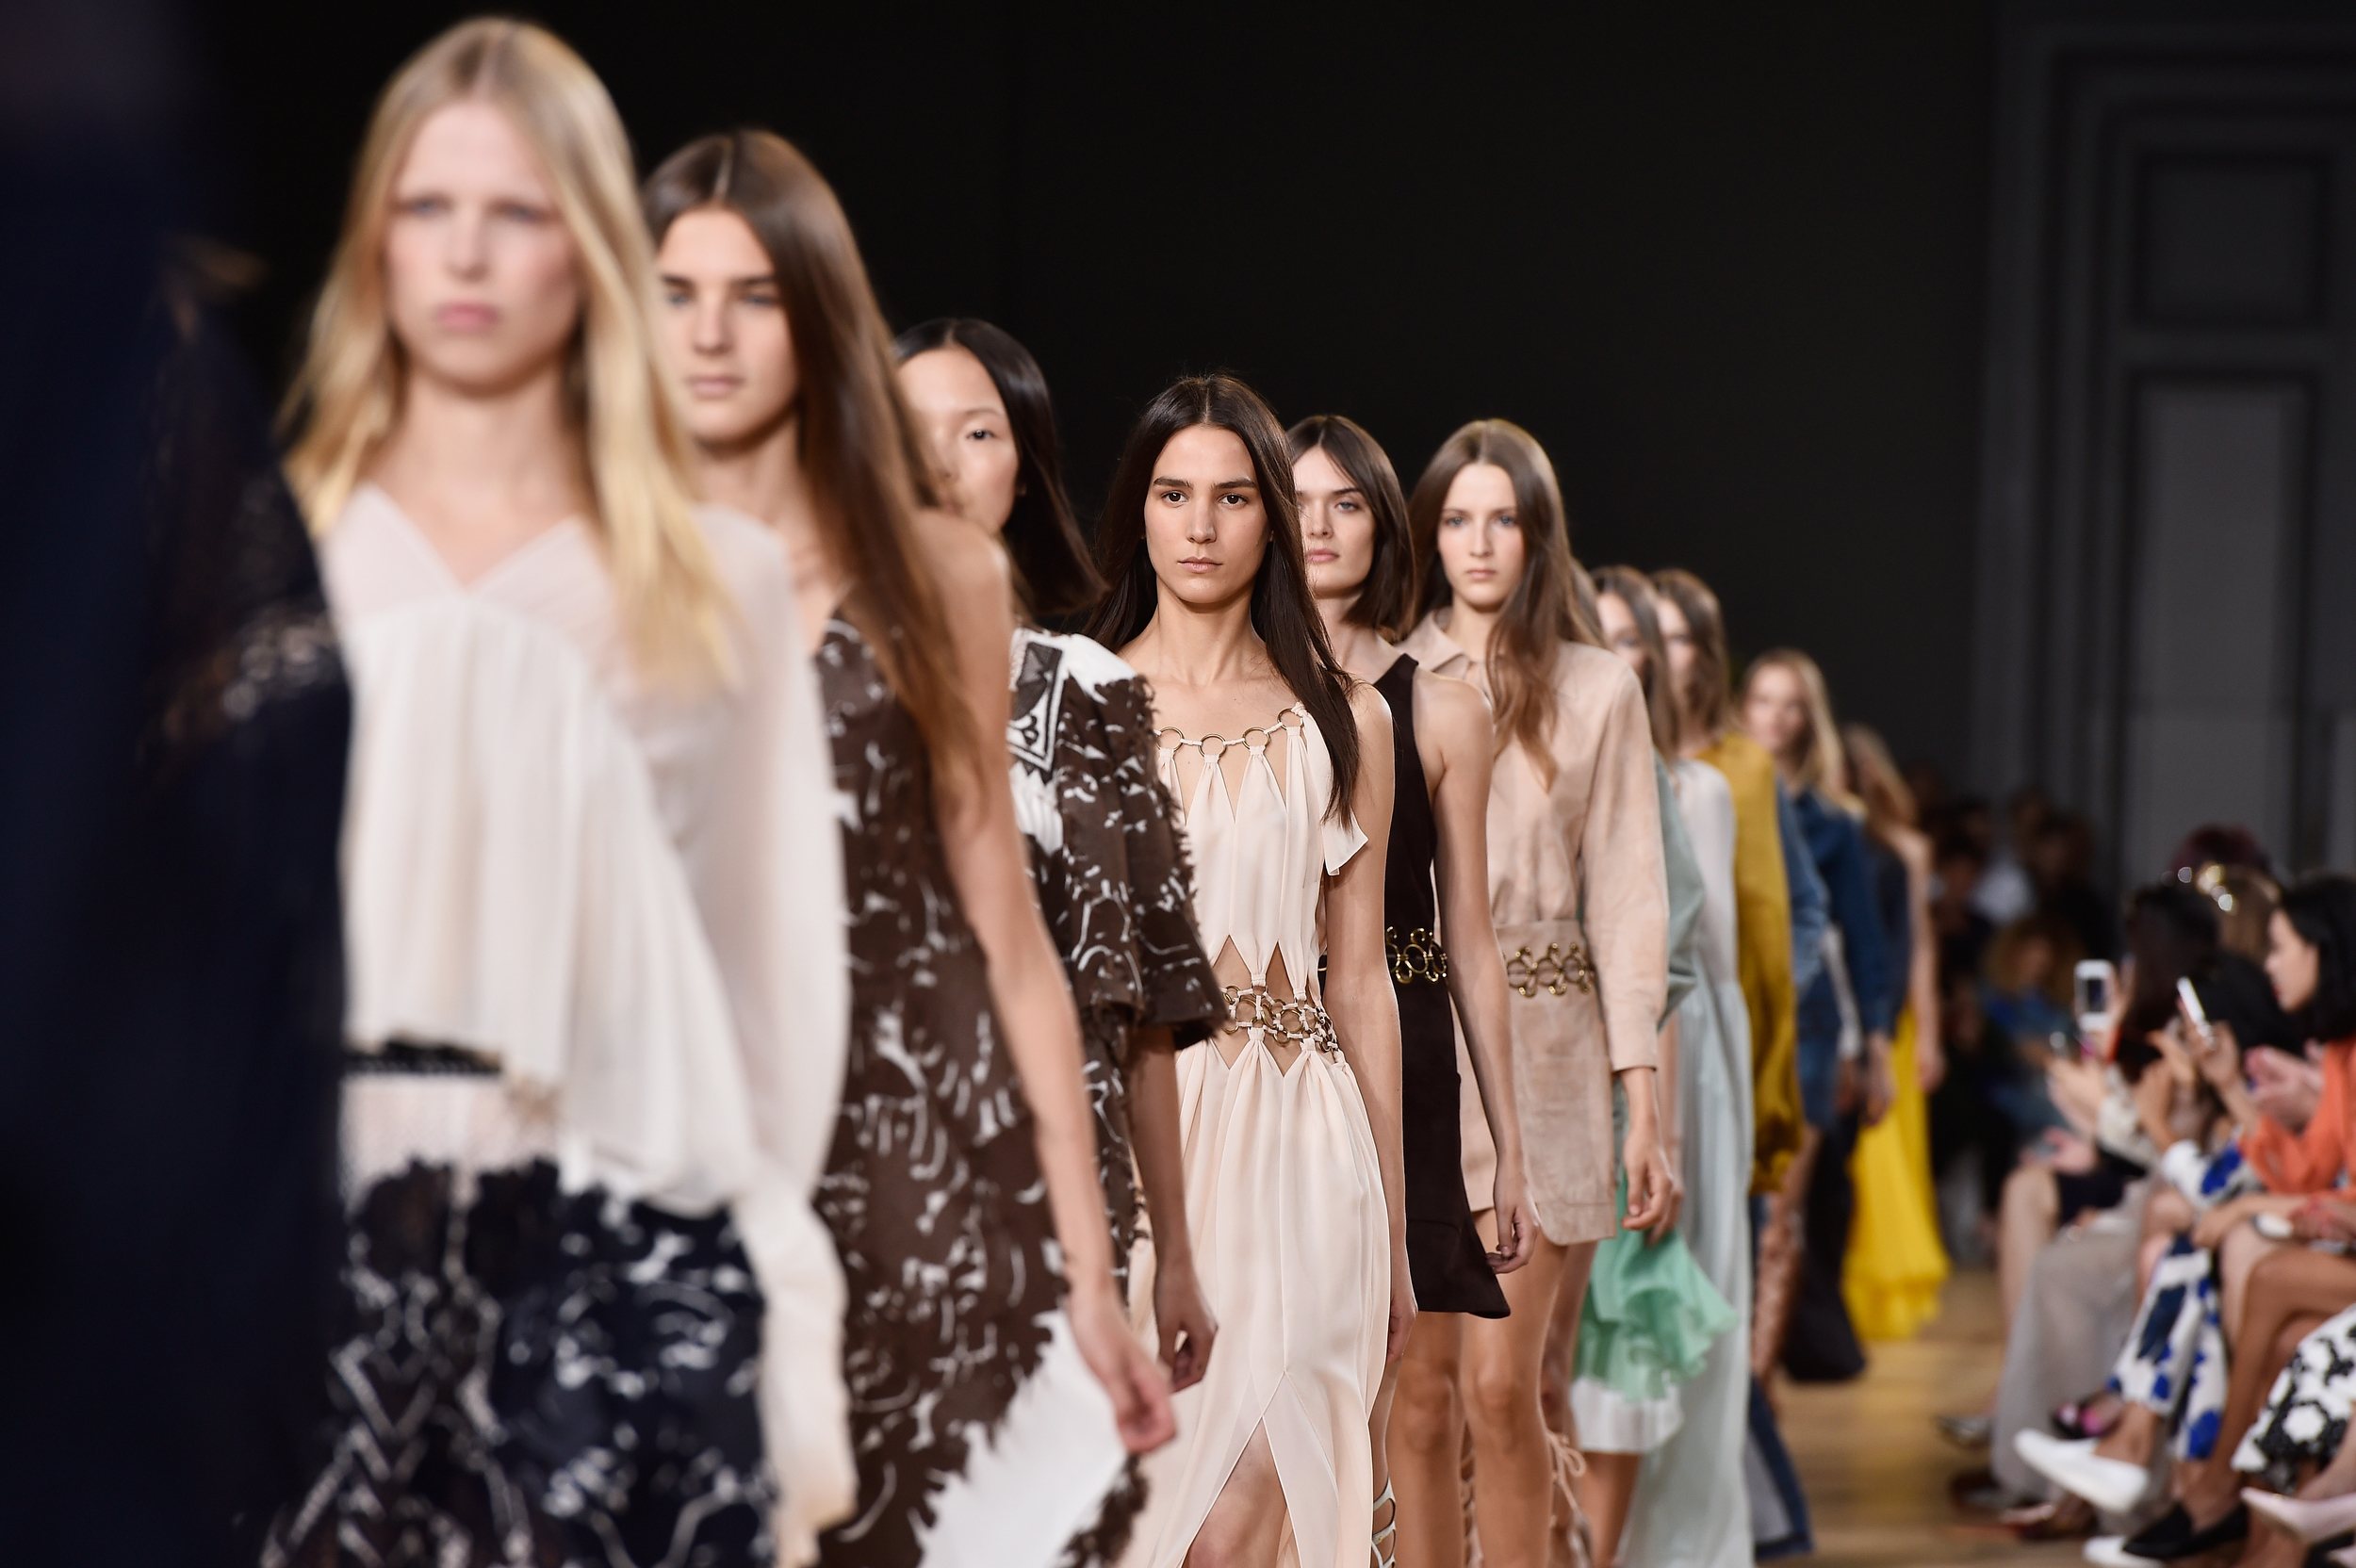 """Let's talk about France's proposed ban on """"excessively thin"""" models"""